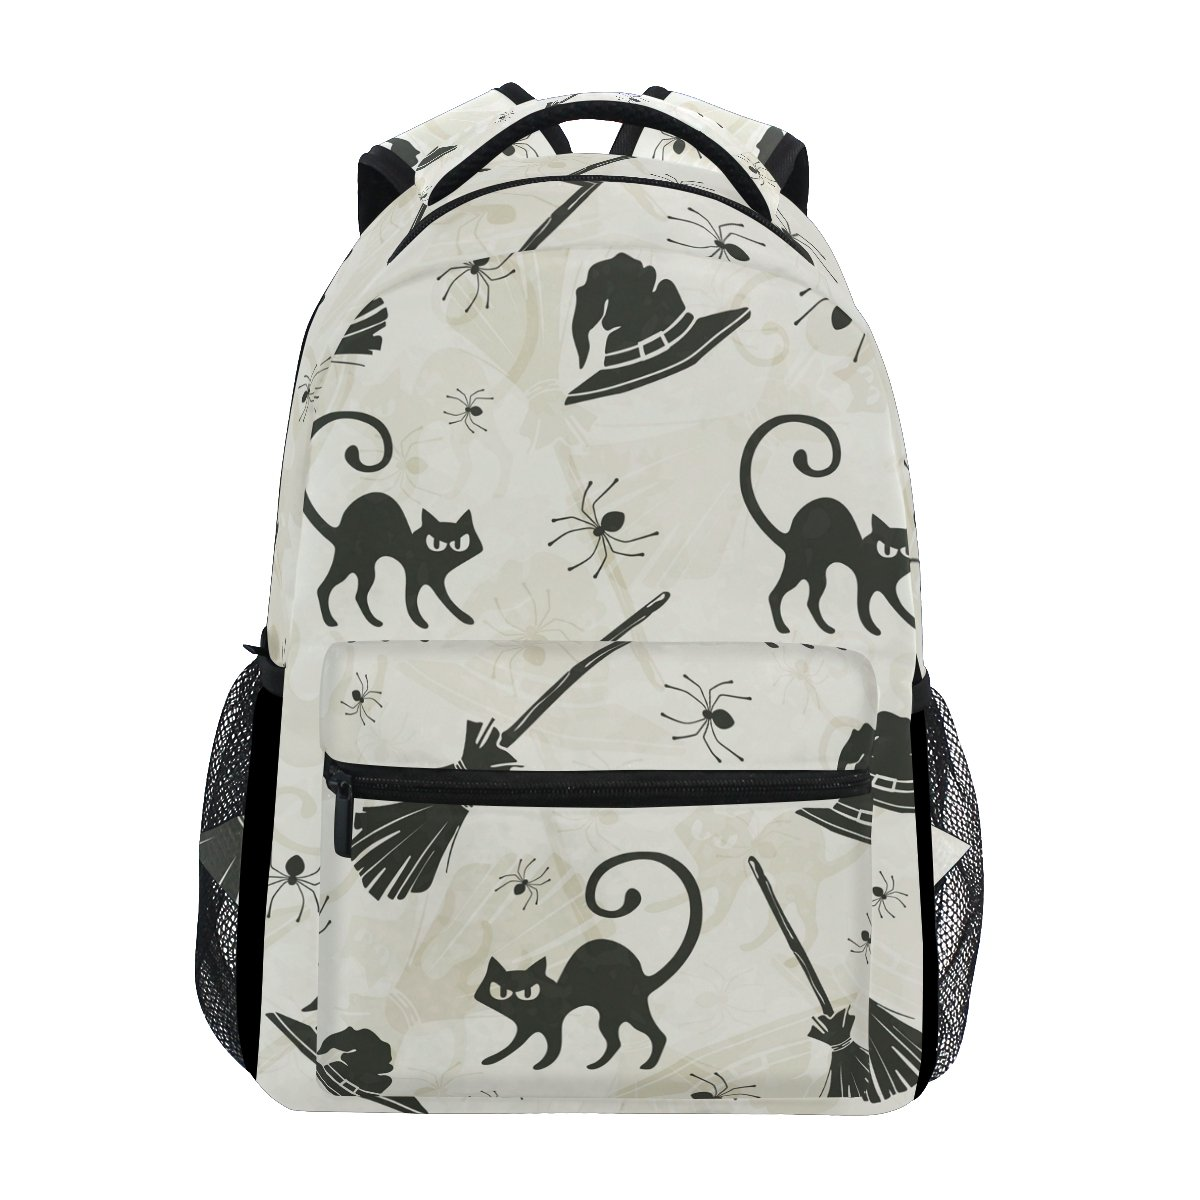 GIOVANIOR Halloween Cats Brooms and Witch Hats Backpack School Bag Bookbag Hiking Travel Rucksack